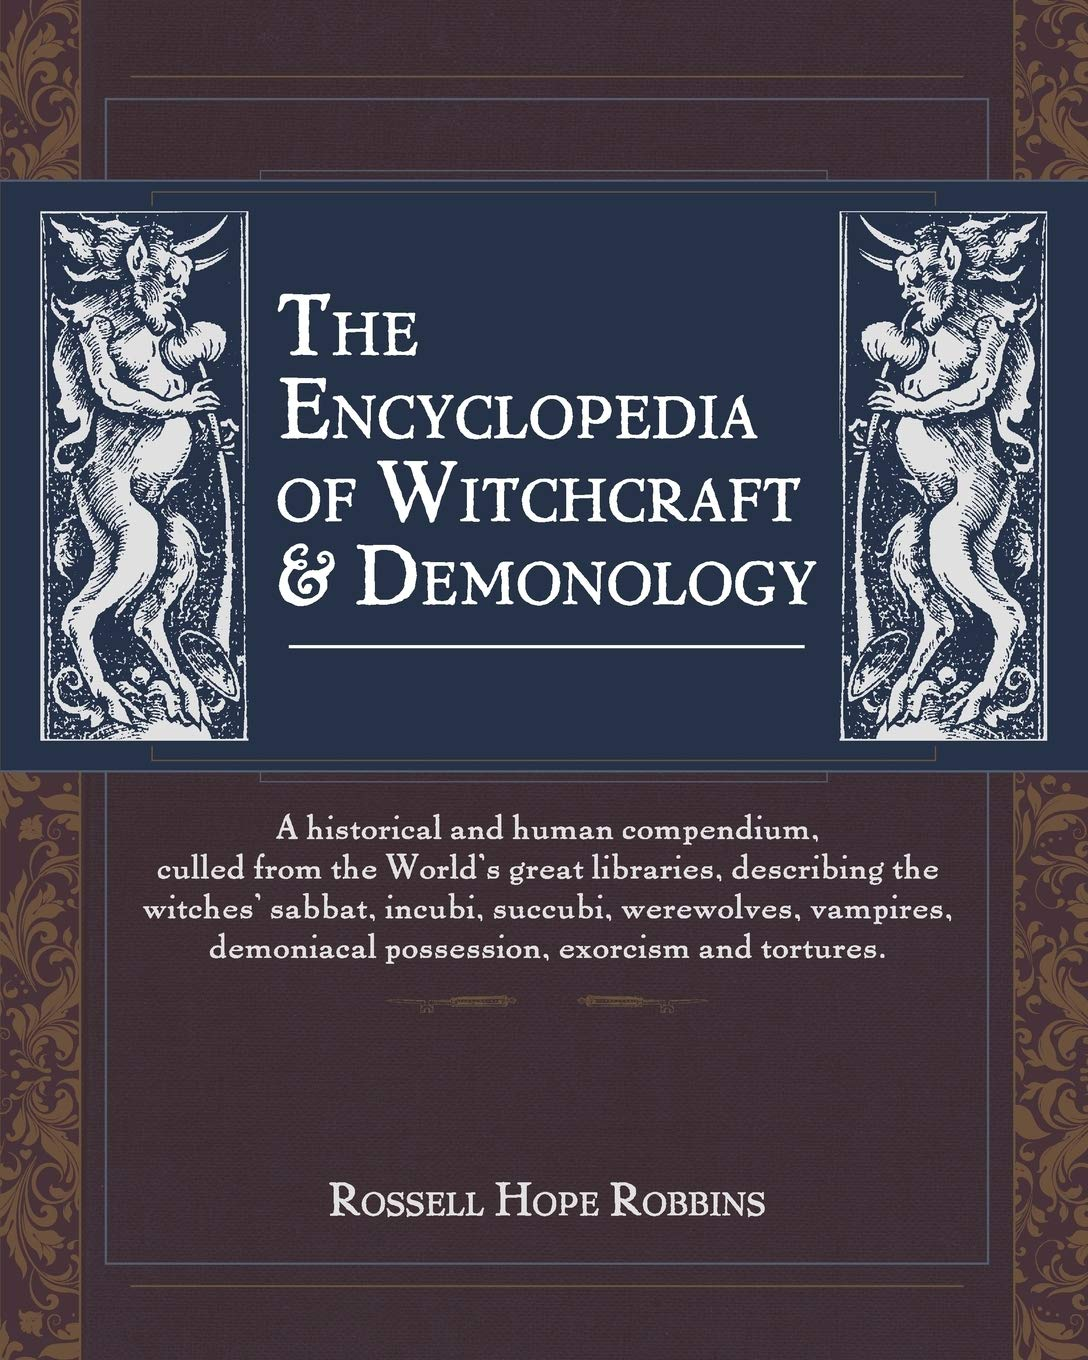 The Encyclopedia Of Witchcraft & Demonology by Girard & Stewart